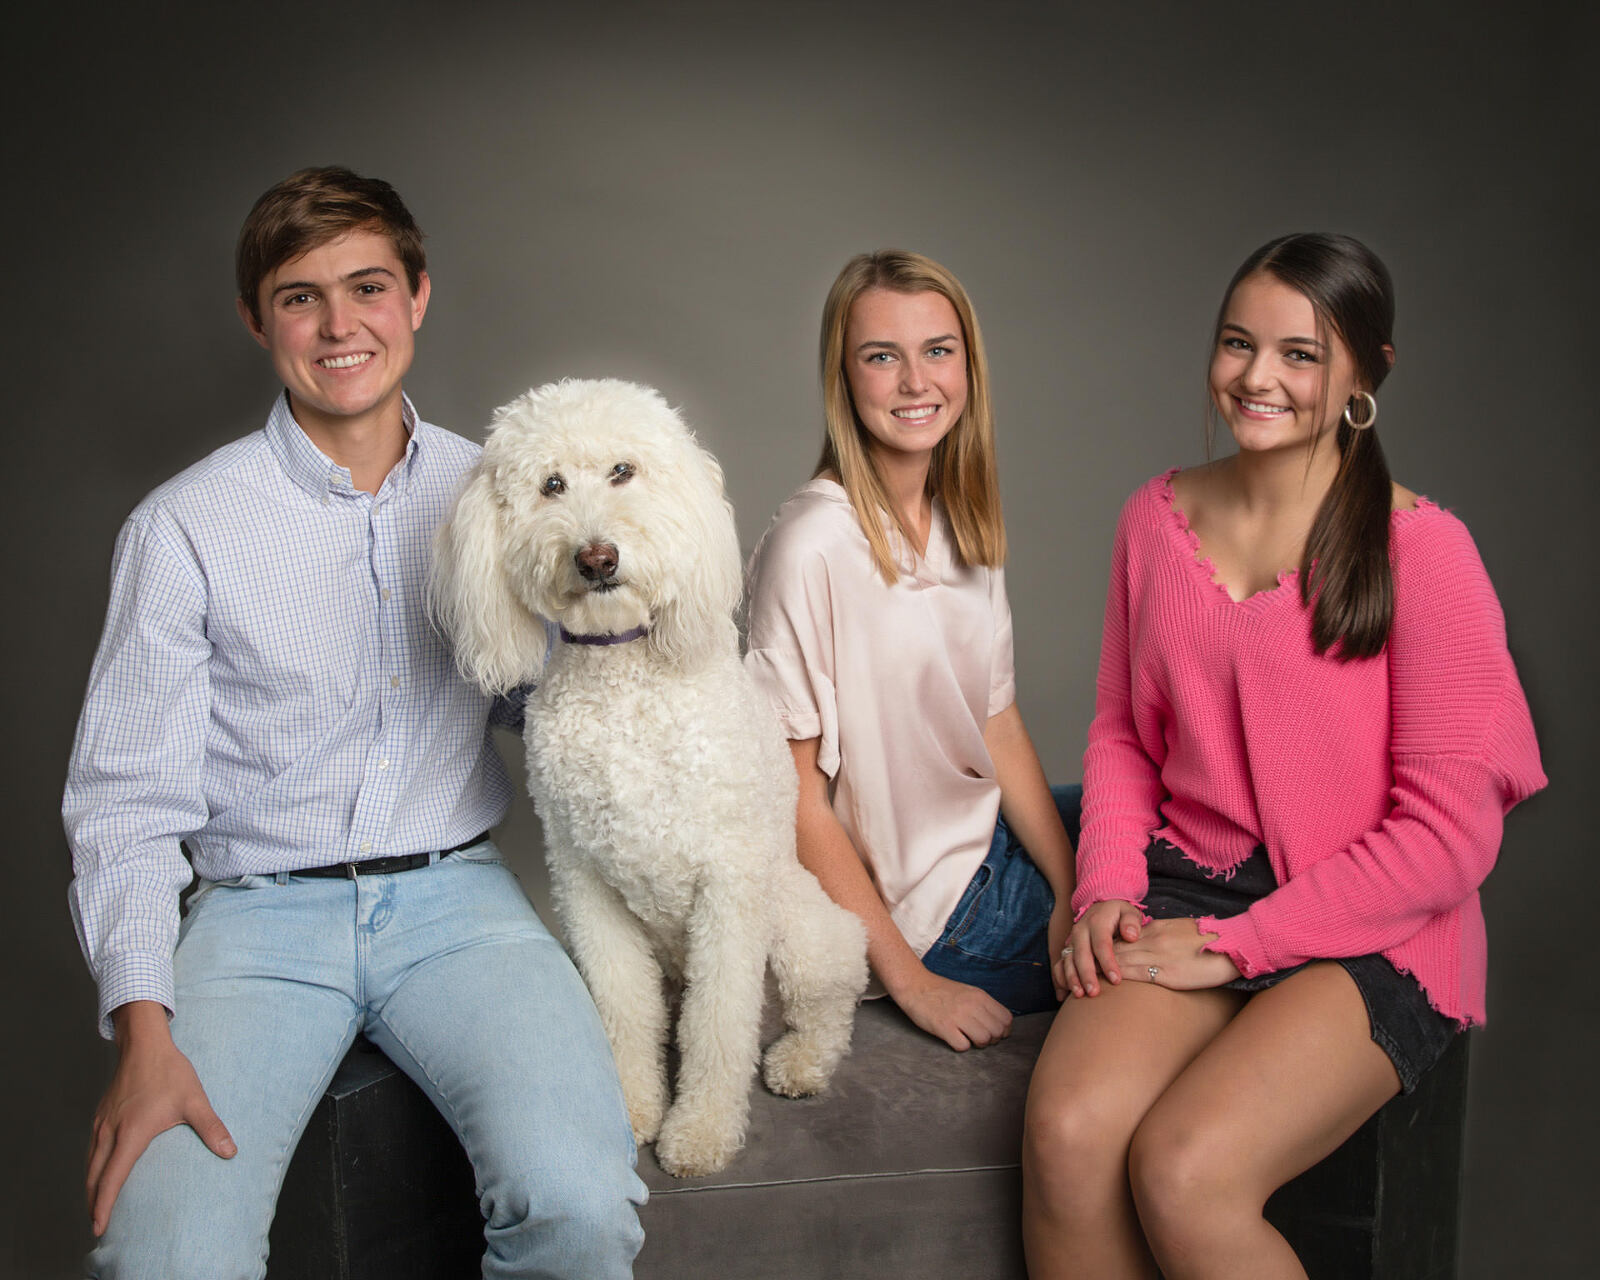 Studio family picture for a Christmas card in Birmingham, Alabama by Irene Gardner